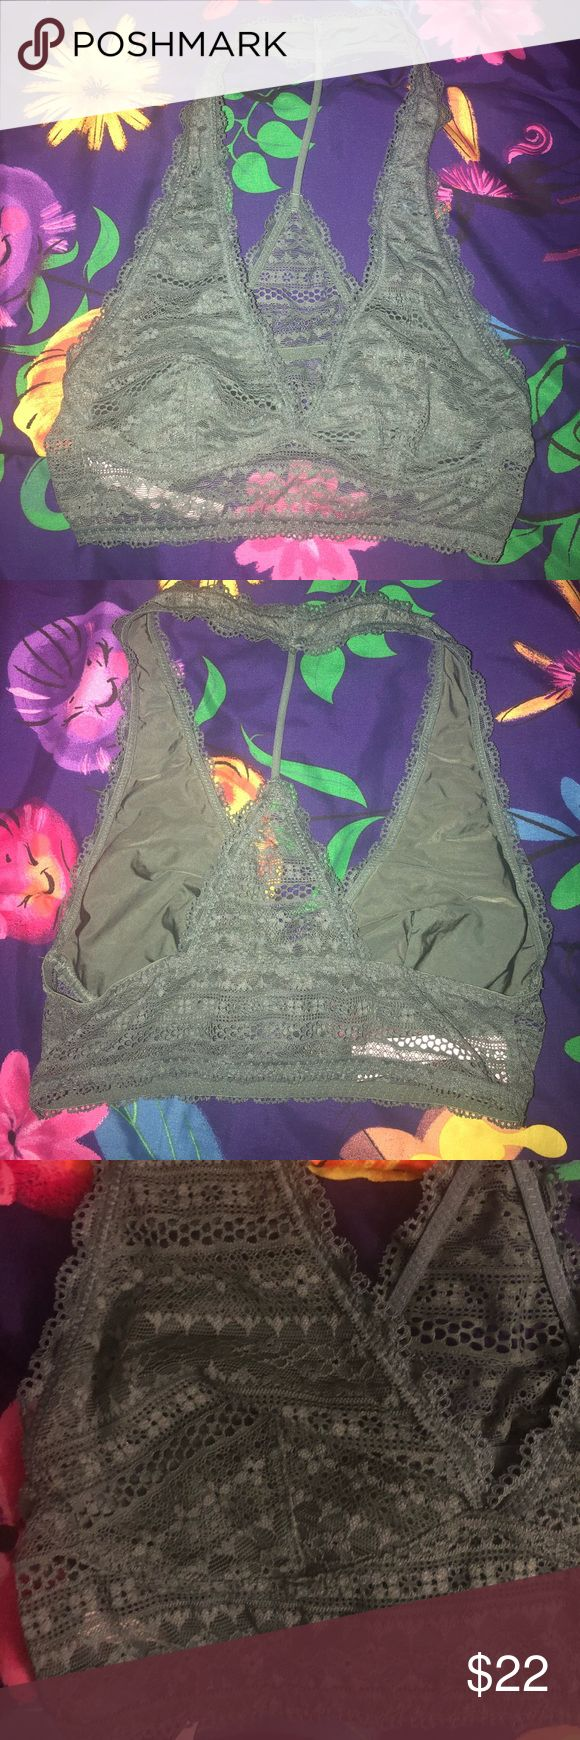 VS Olive Bralette Olive green lace bralette, great condition! Used once & washed properly; not put in dryer  No rips, stains, or snags  Open to offers! Victoria's Secret Intimates & Sleepwear